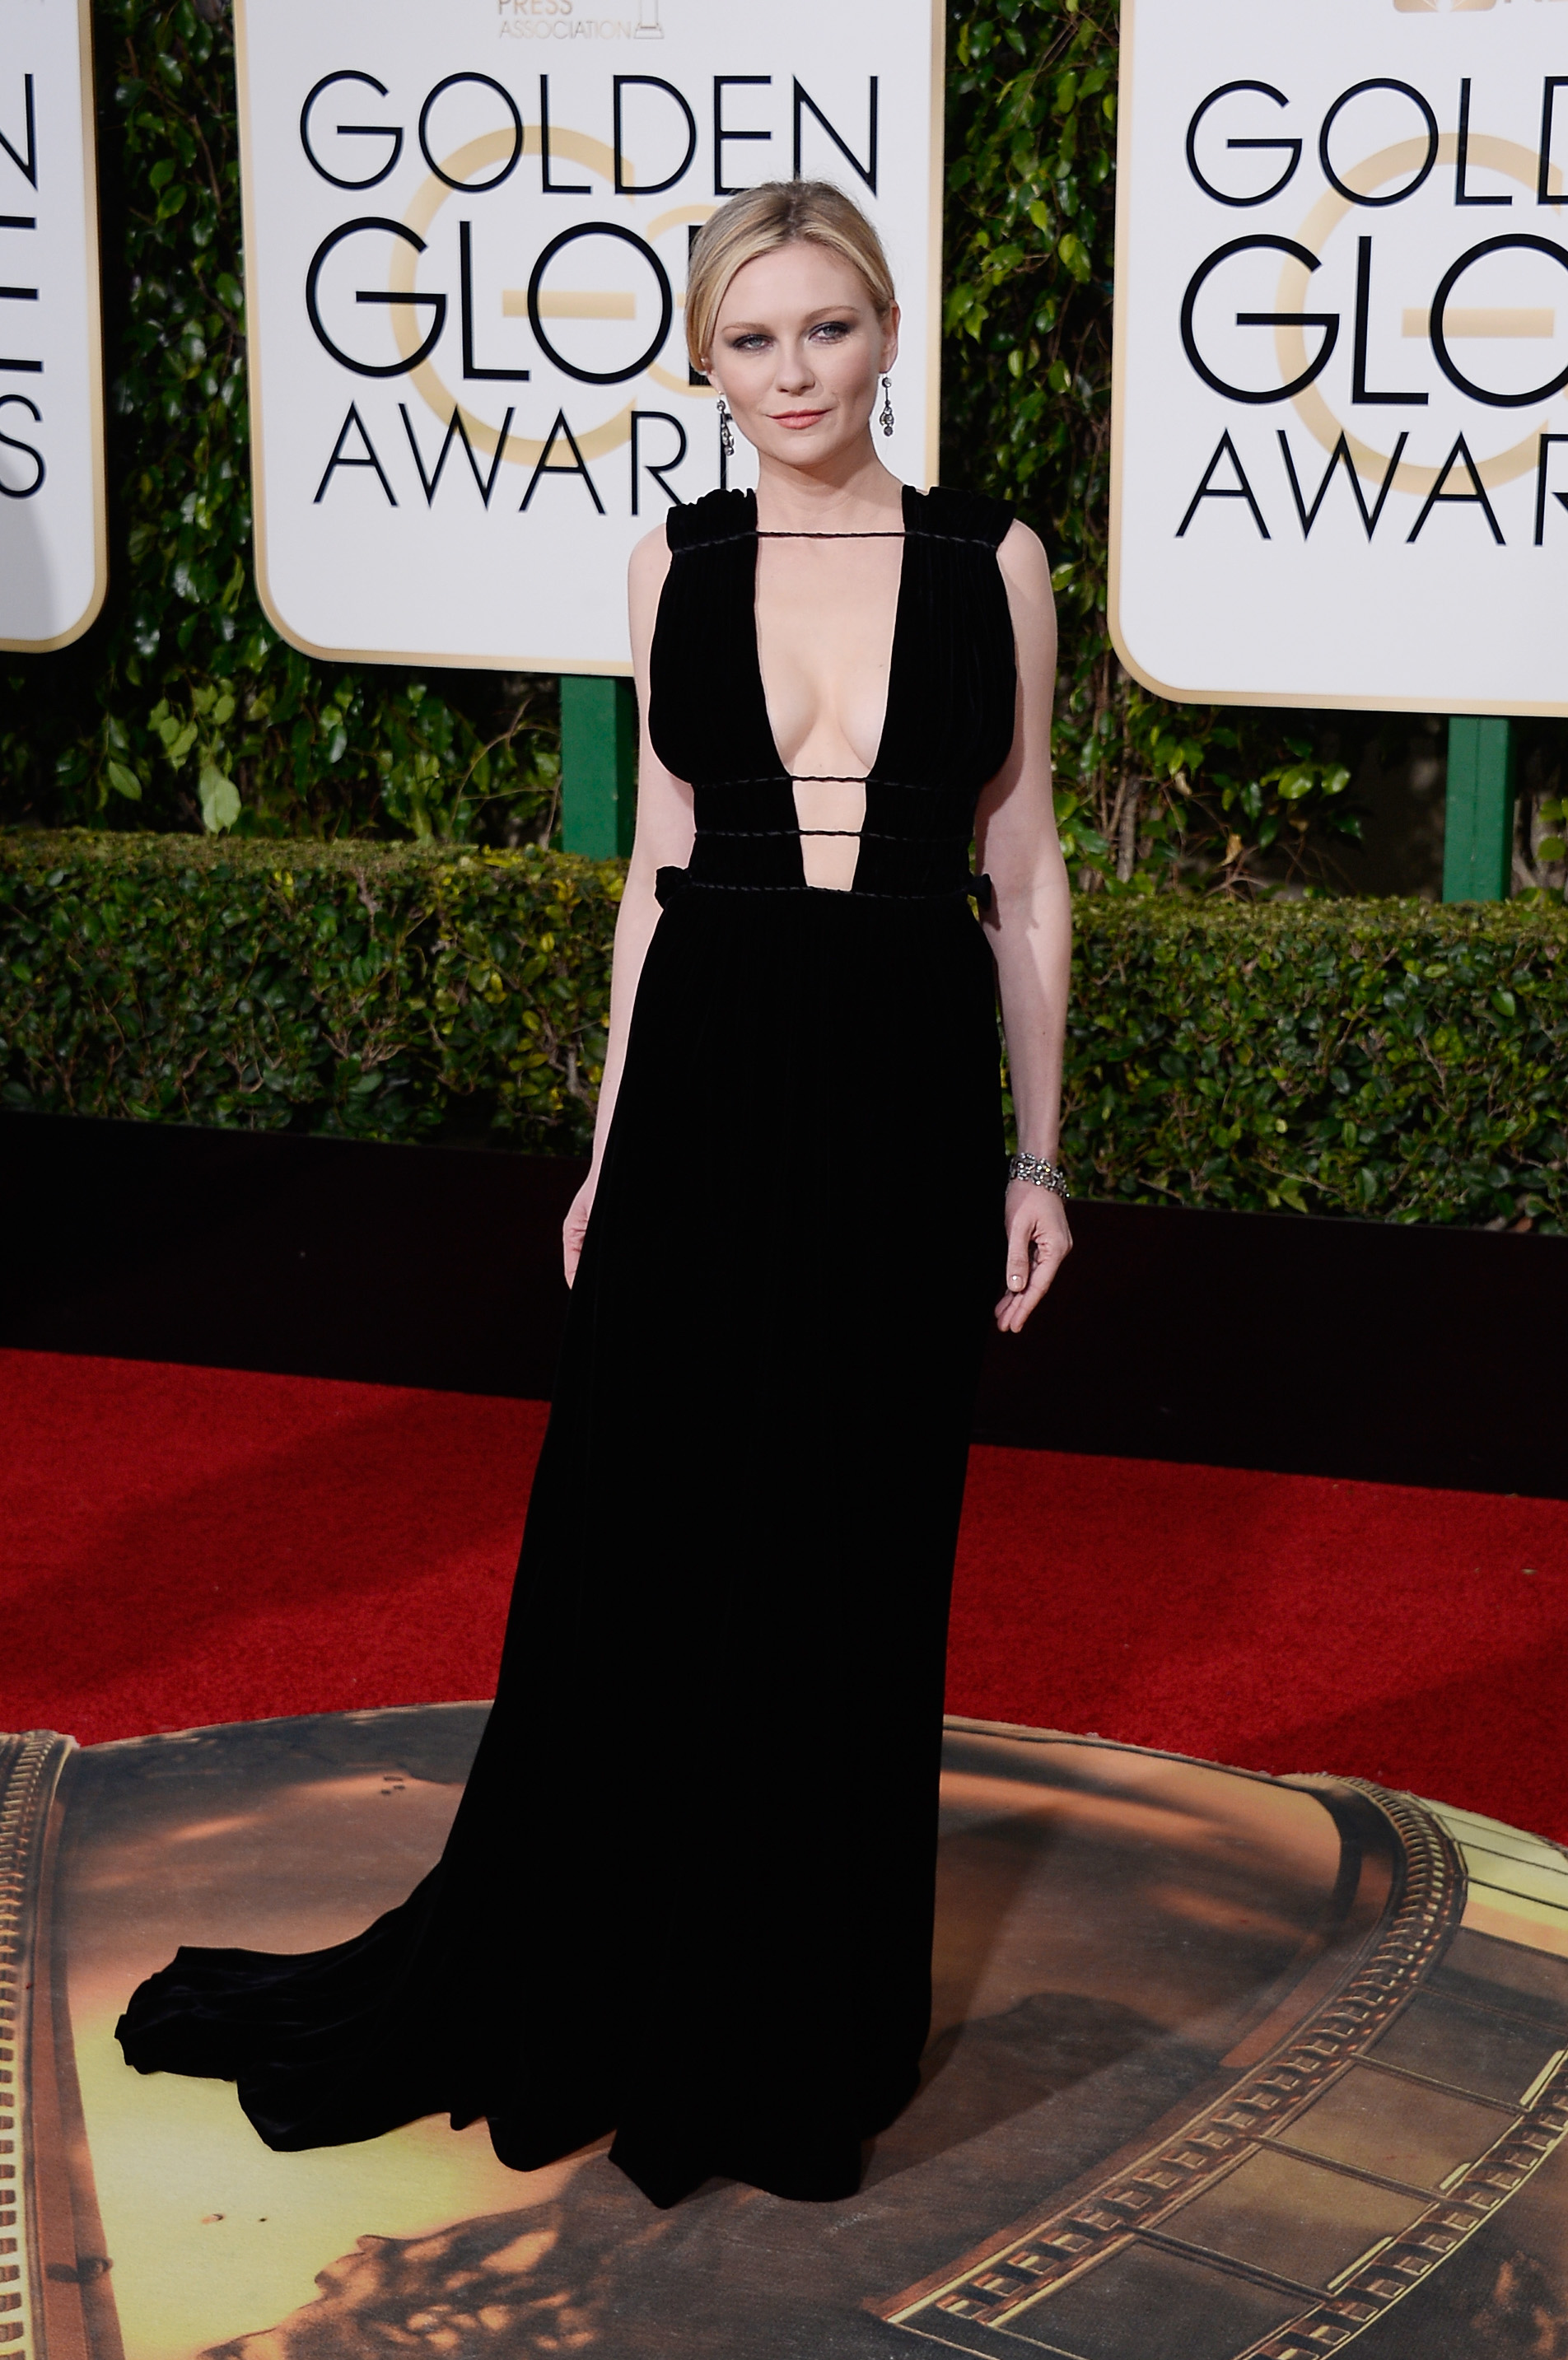 Kirsten Dunst arrives to the 73rd Annual Golden Globe Awards on Jan. 10, 2016 in Beverly Hills.